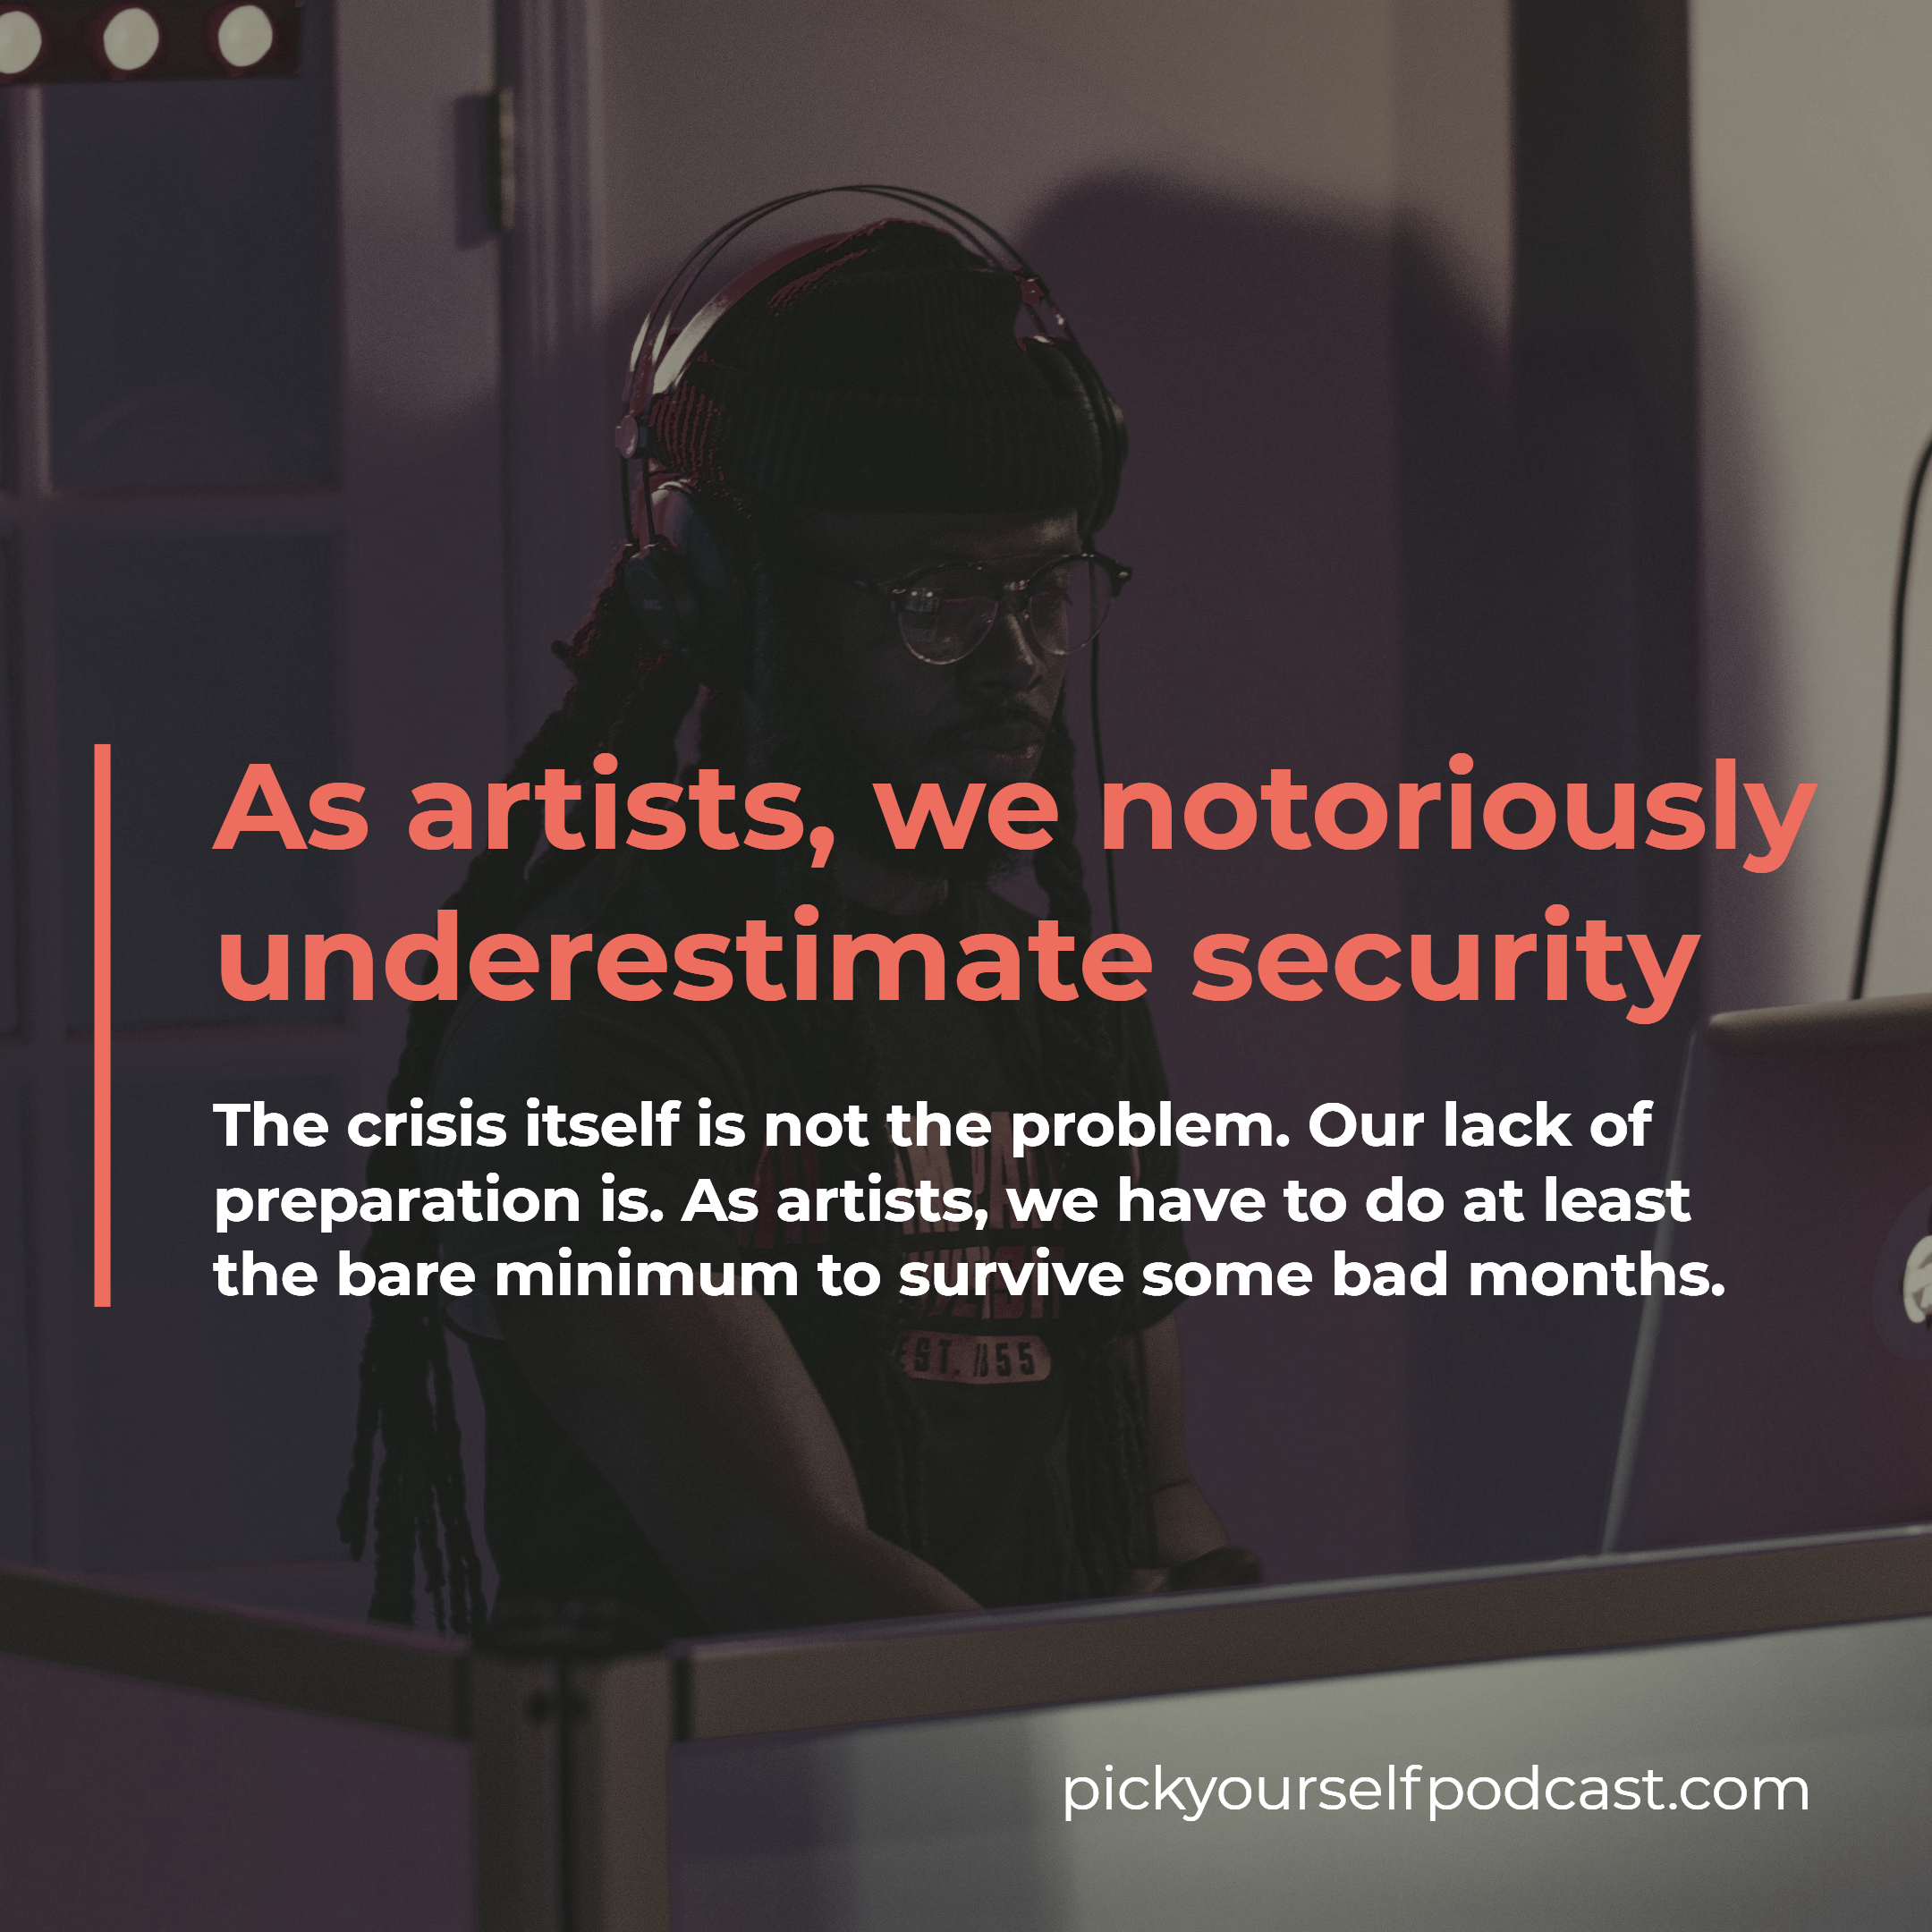 how to survive a crisis as an artist visual 1. It says: As artists we notoriously underestimate security.